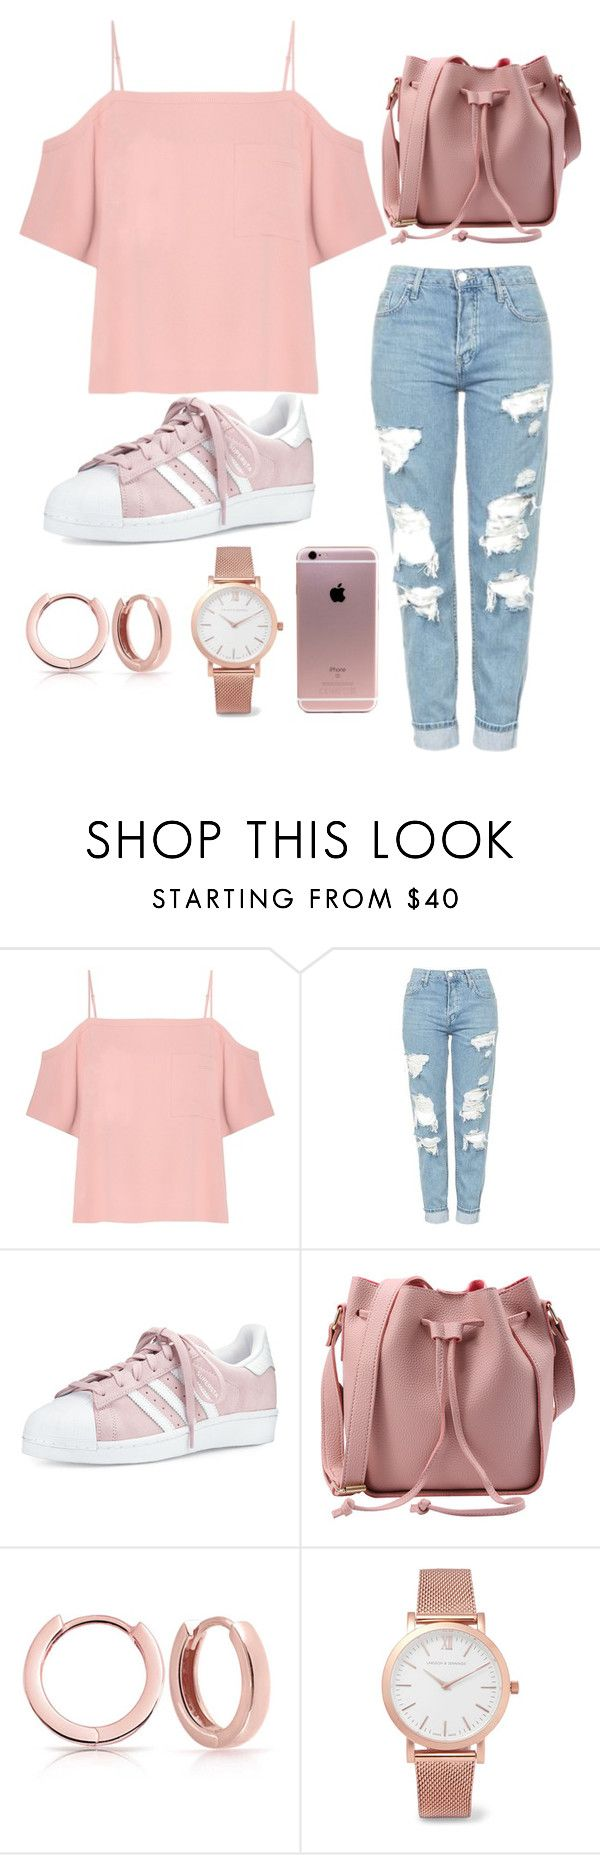 """Untitled #99"" by andreia-lin on Polyvore featuring T By Alexander Wang, Topshop, adidas, Bling Jewelry and Larsson & Jennings"